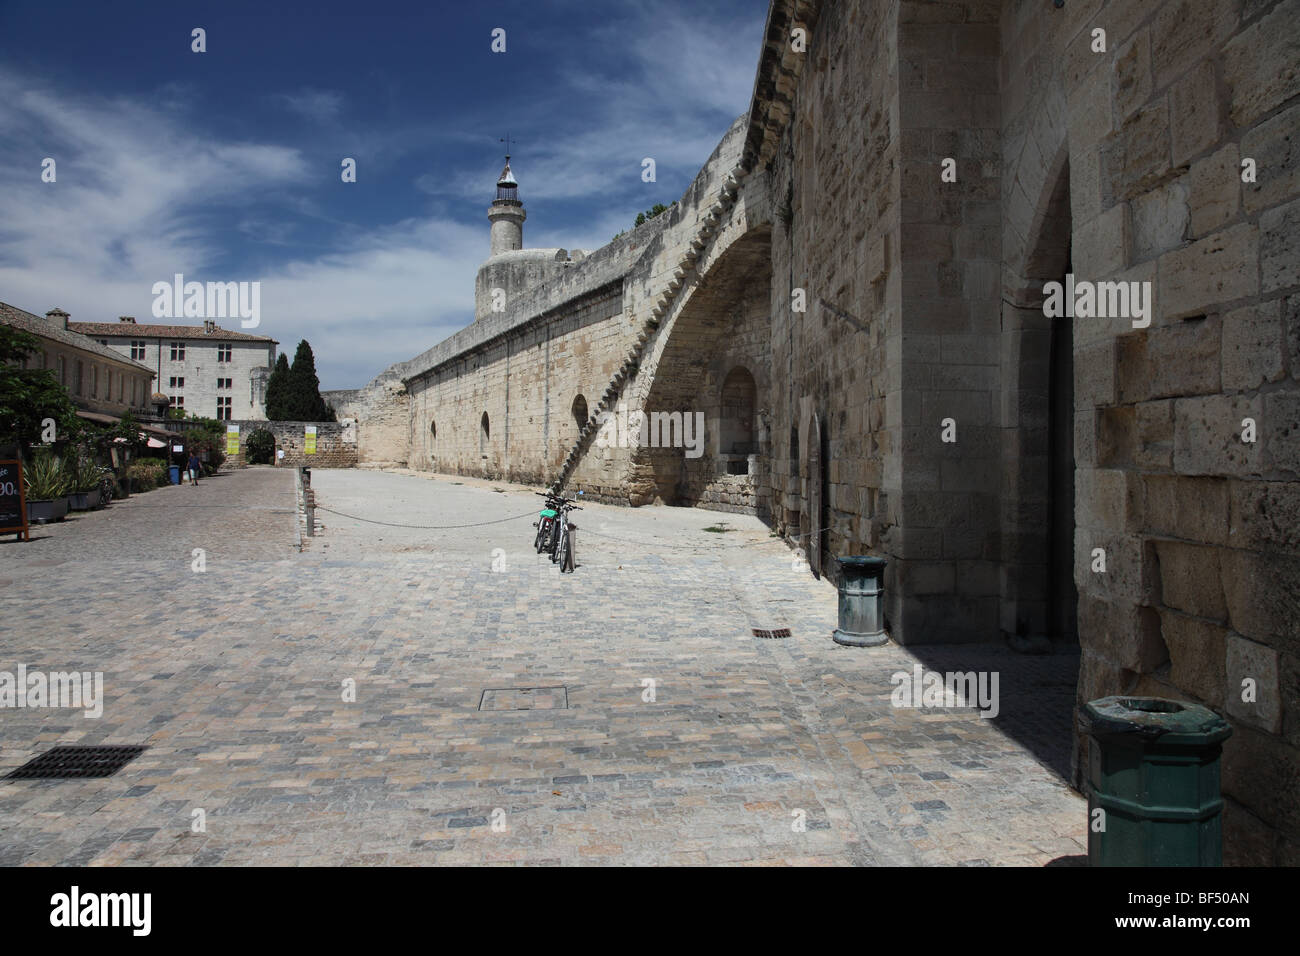 View of the Walls Inside the Medieval Walled Town of Aigues Mortes Camargue France - Stock Image